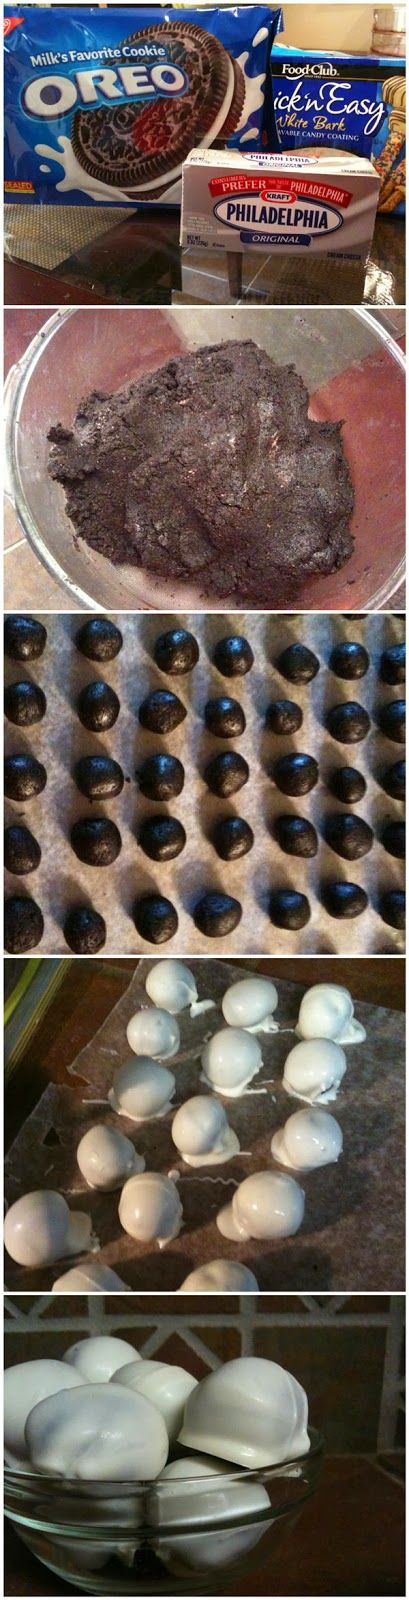 White Chocolate Covered Oreo Balls. These are freaking awesome. And if you do it just right, they look like eyeballs. Great for Halloween.